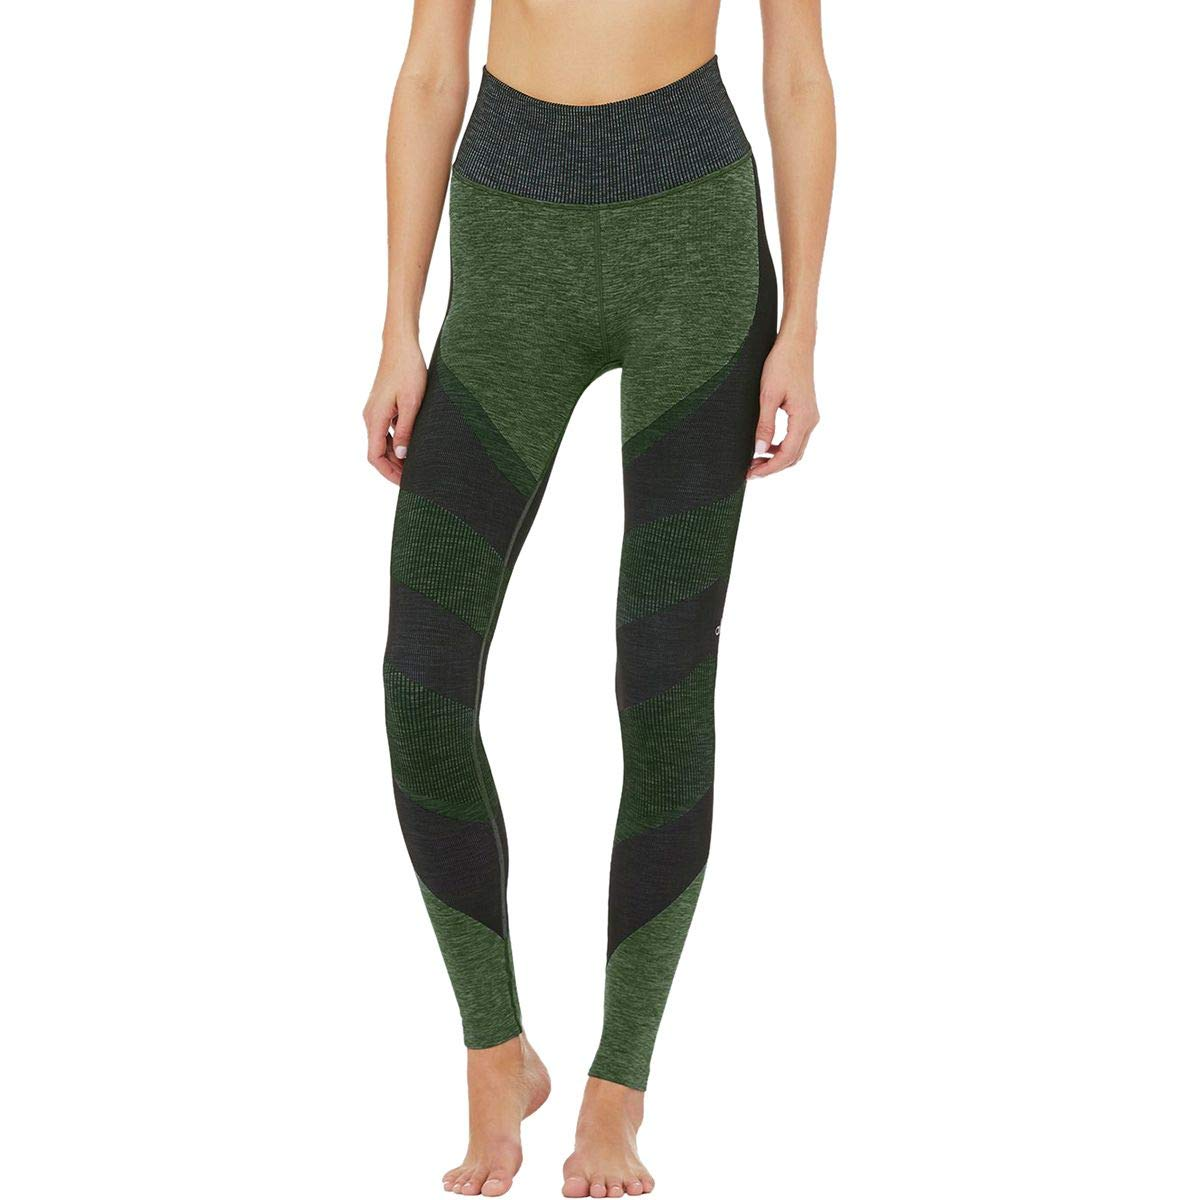 a1e790142b Amazon.com: Alo Yoga High-Waist Seamless Lift Legging - Women's Hunter, L:  Sports & Outdoors